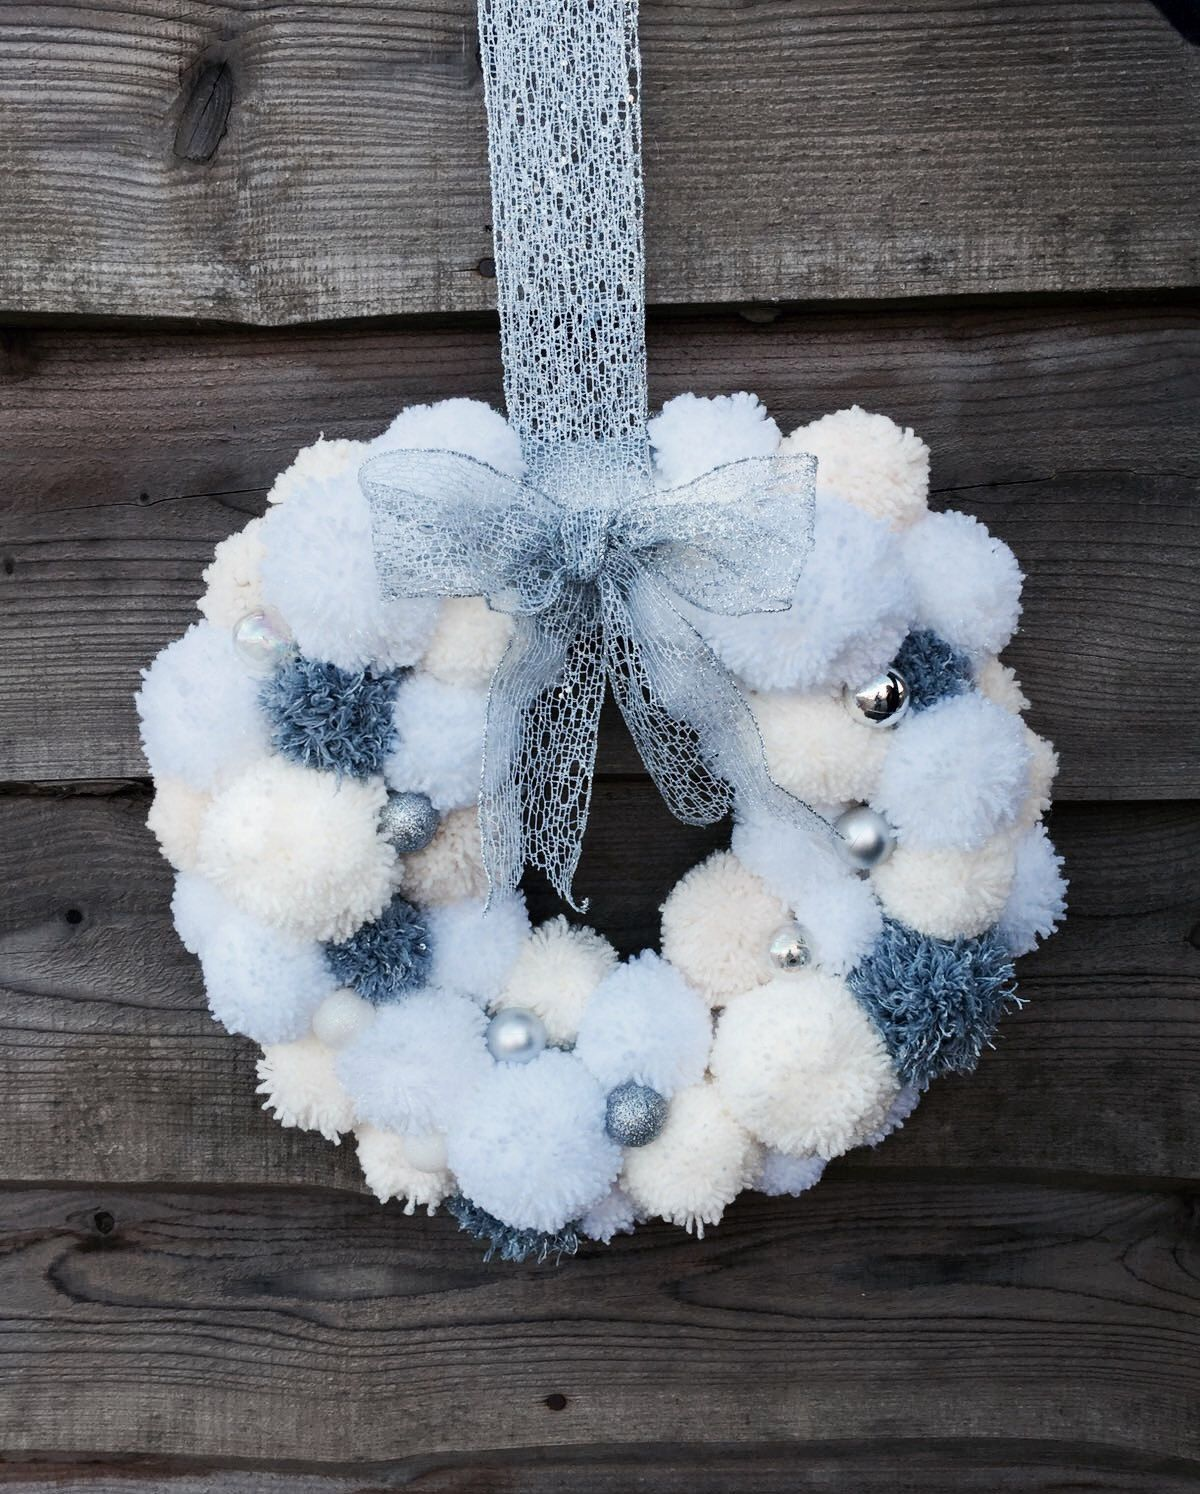 The Pom Pom Ornament Craft That Never Ends: Pom-pom Wreath By WoollyMammothKnitsCo On Etsy